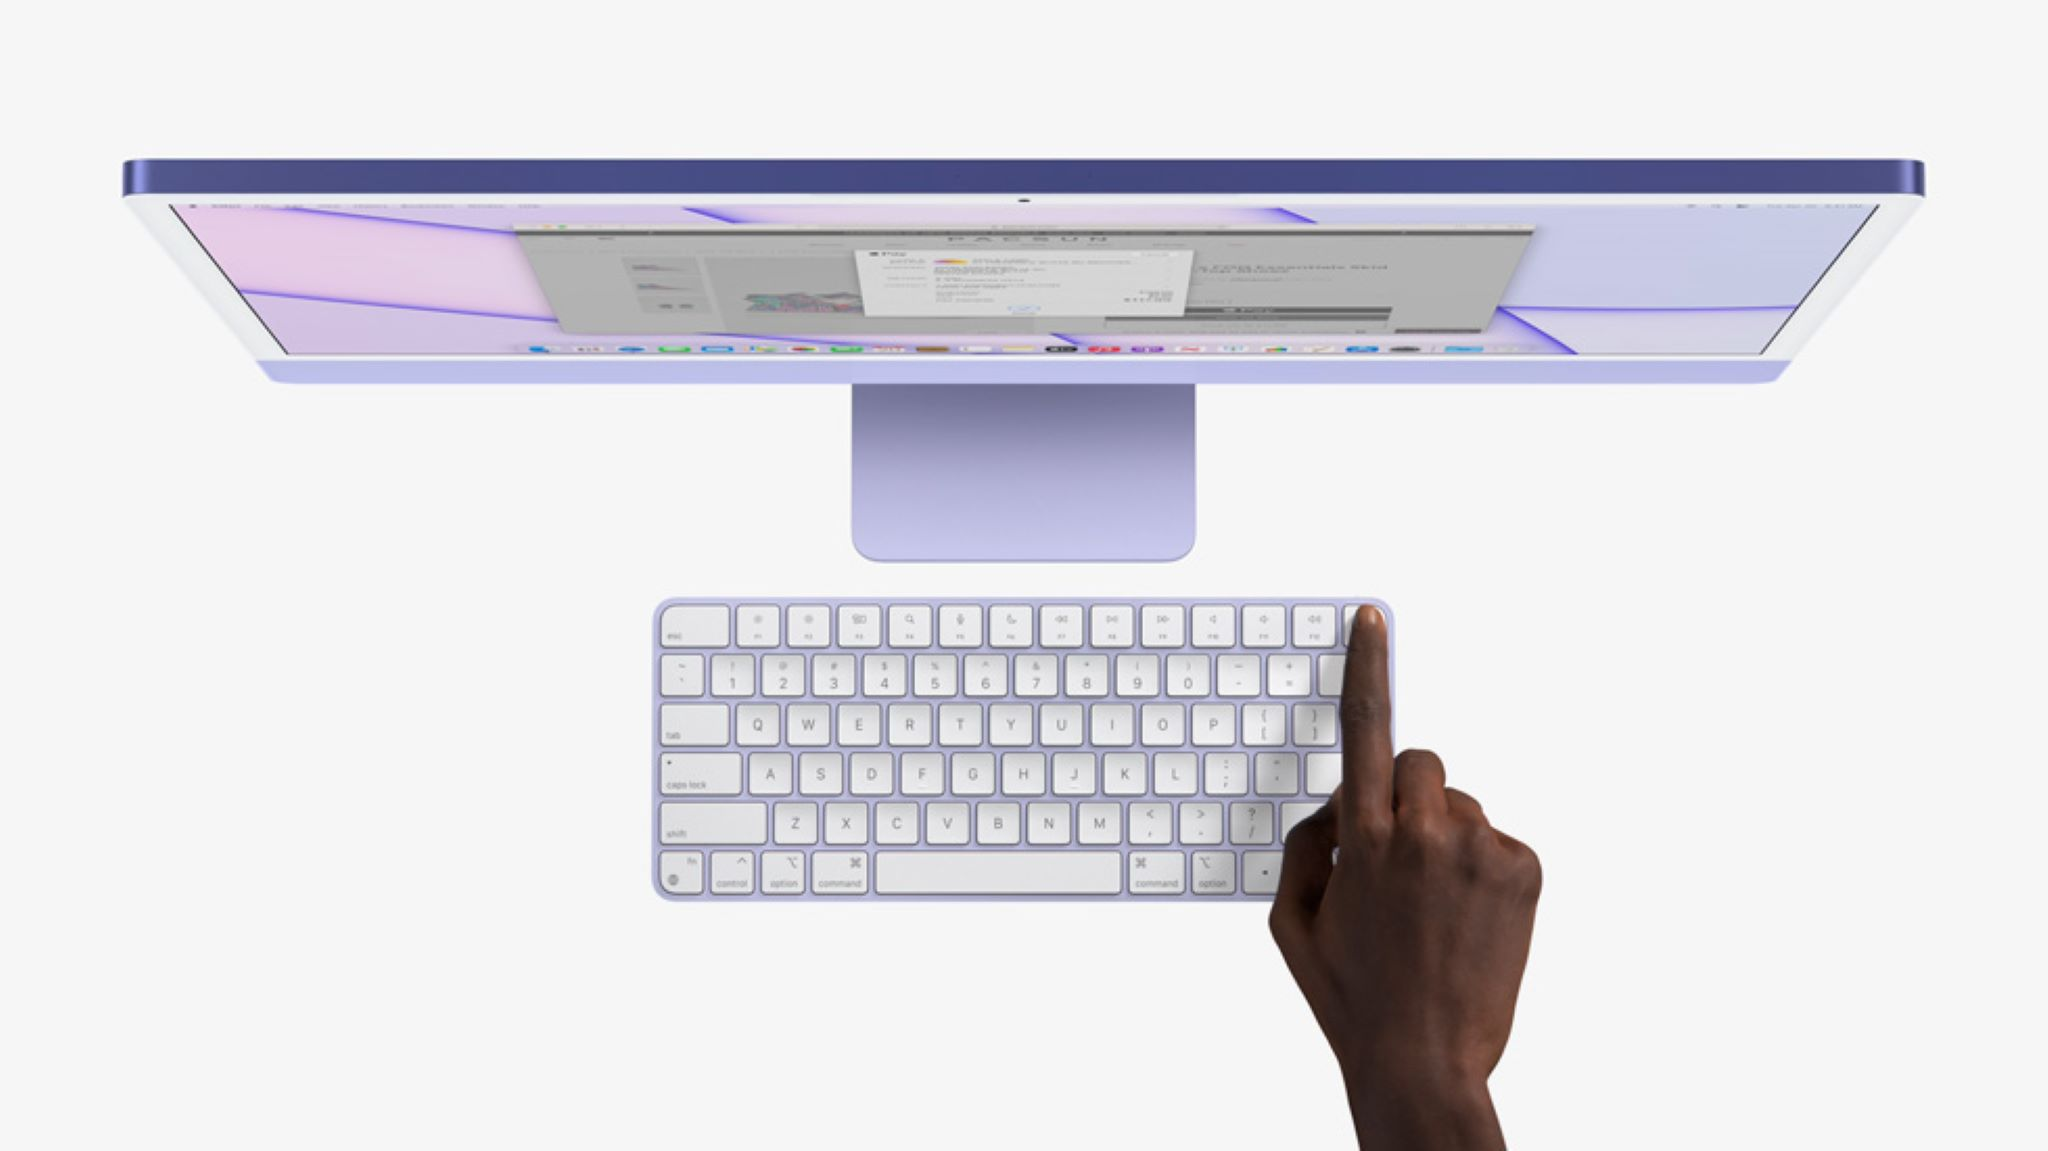 apple_new-imac-spring21_pt-purple-touch-id_04202021_big_carousel.jpg.large.jpg